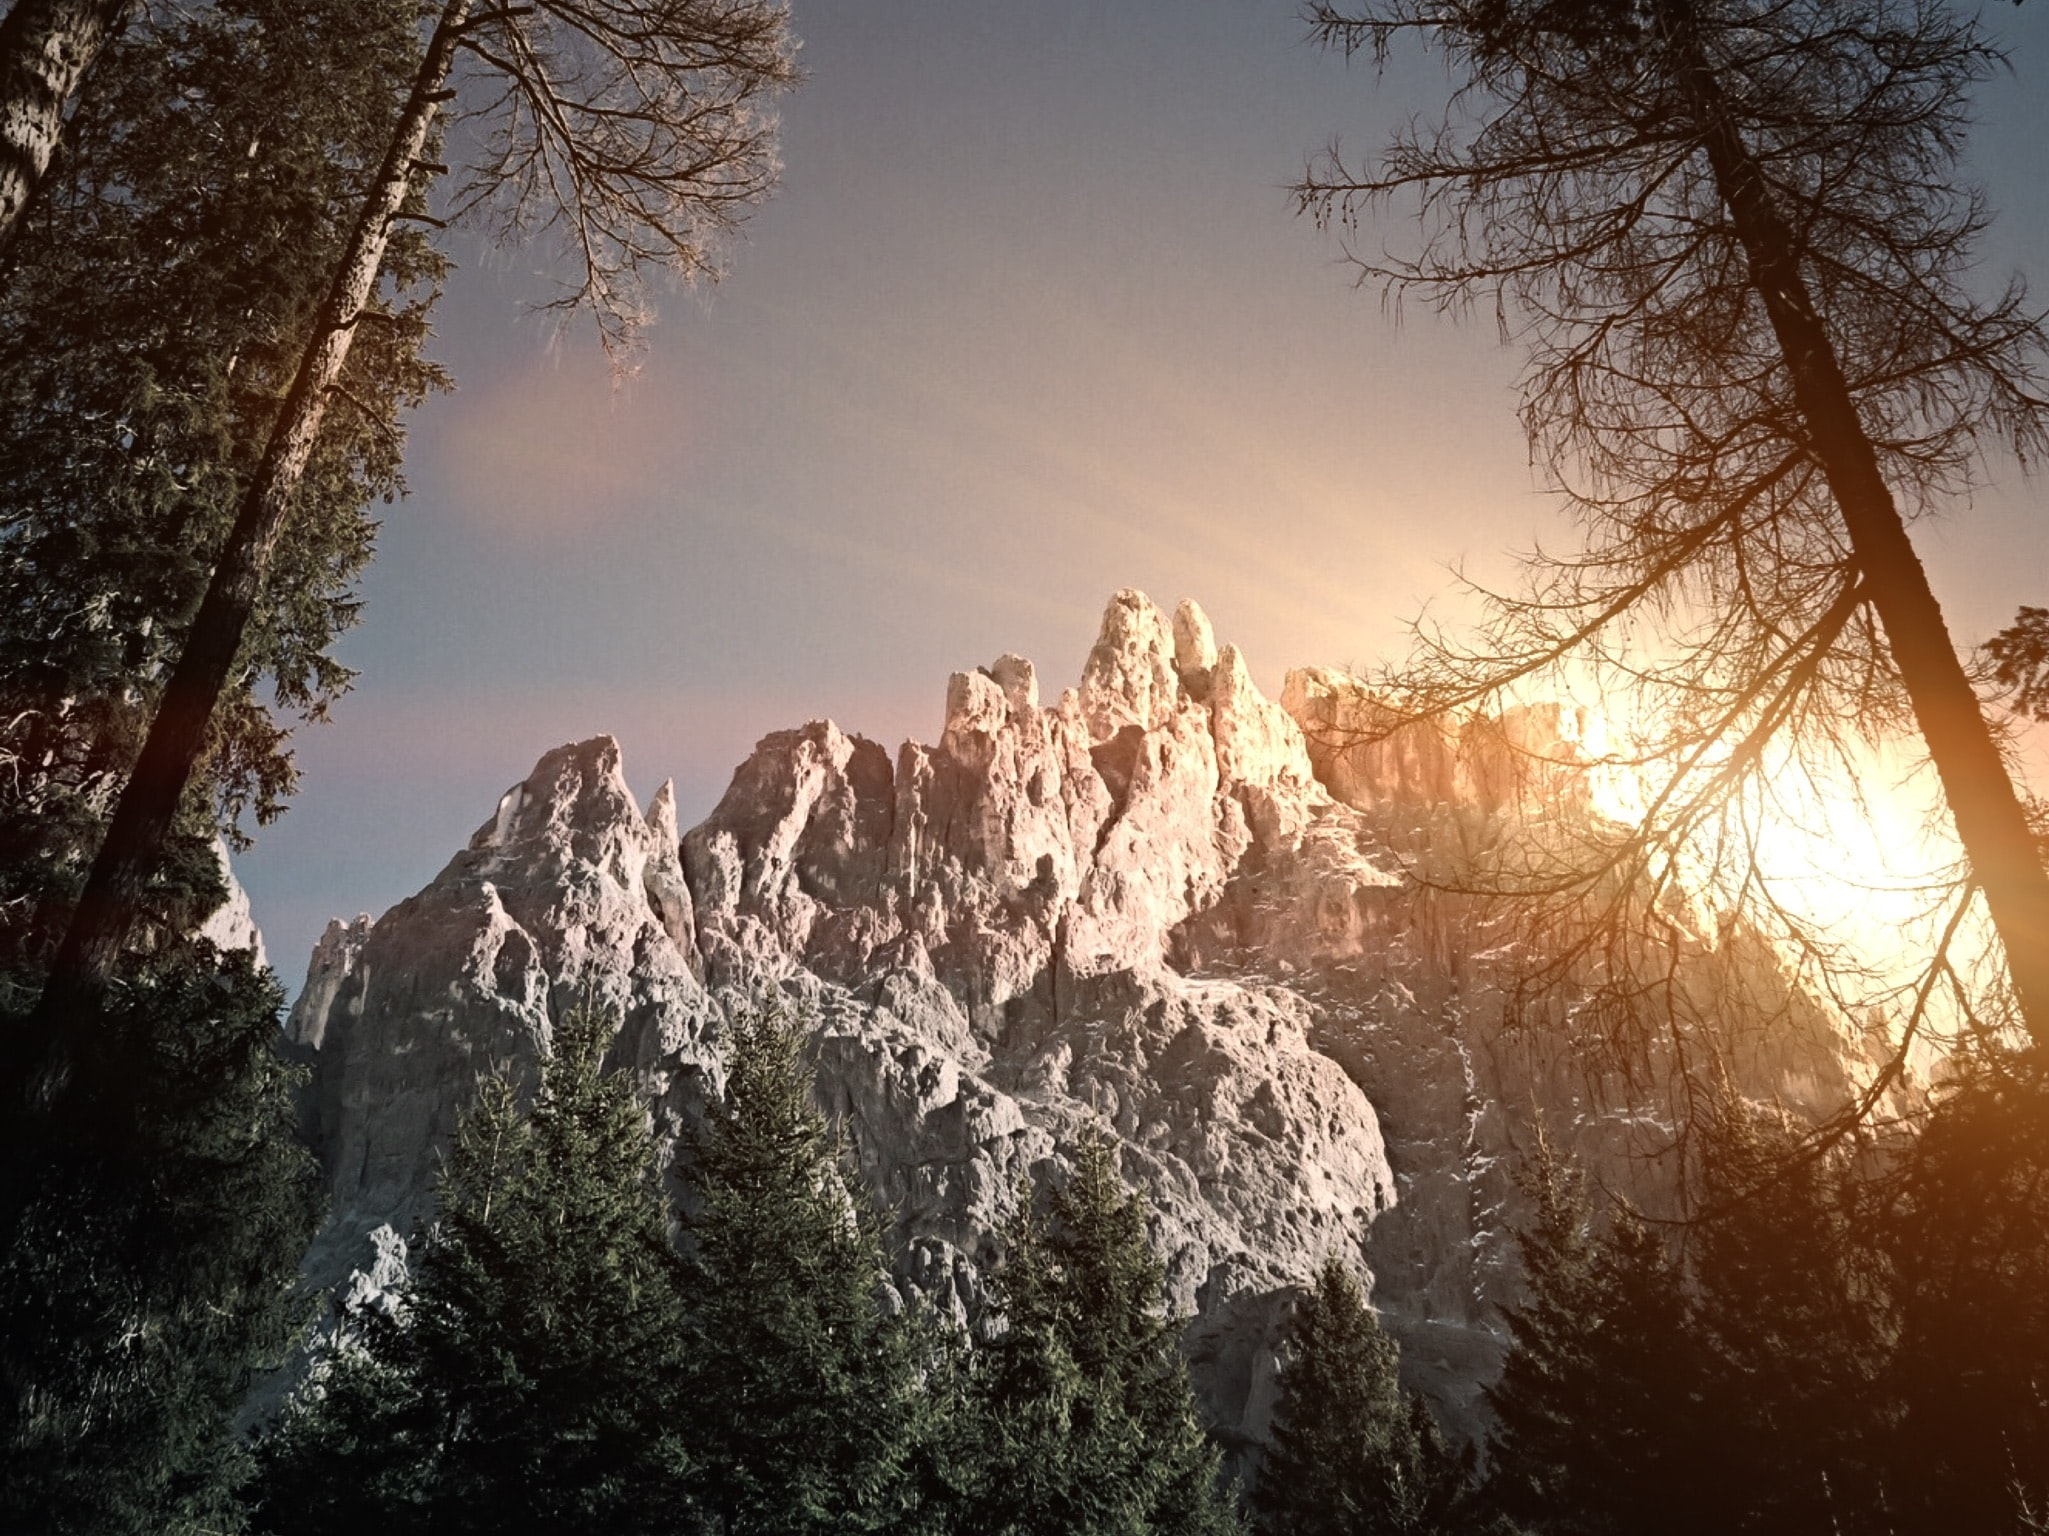 View of San Martino di Castrozza from forest floor at sunrise-or-sunset